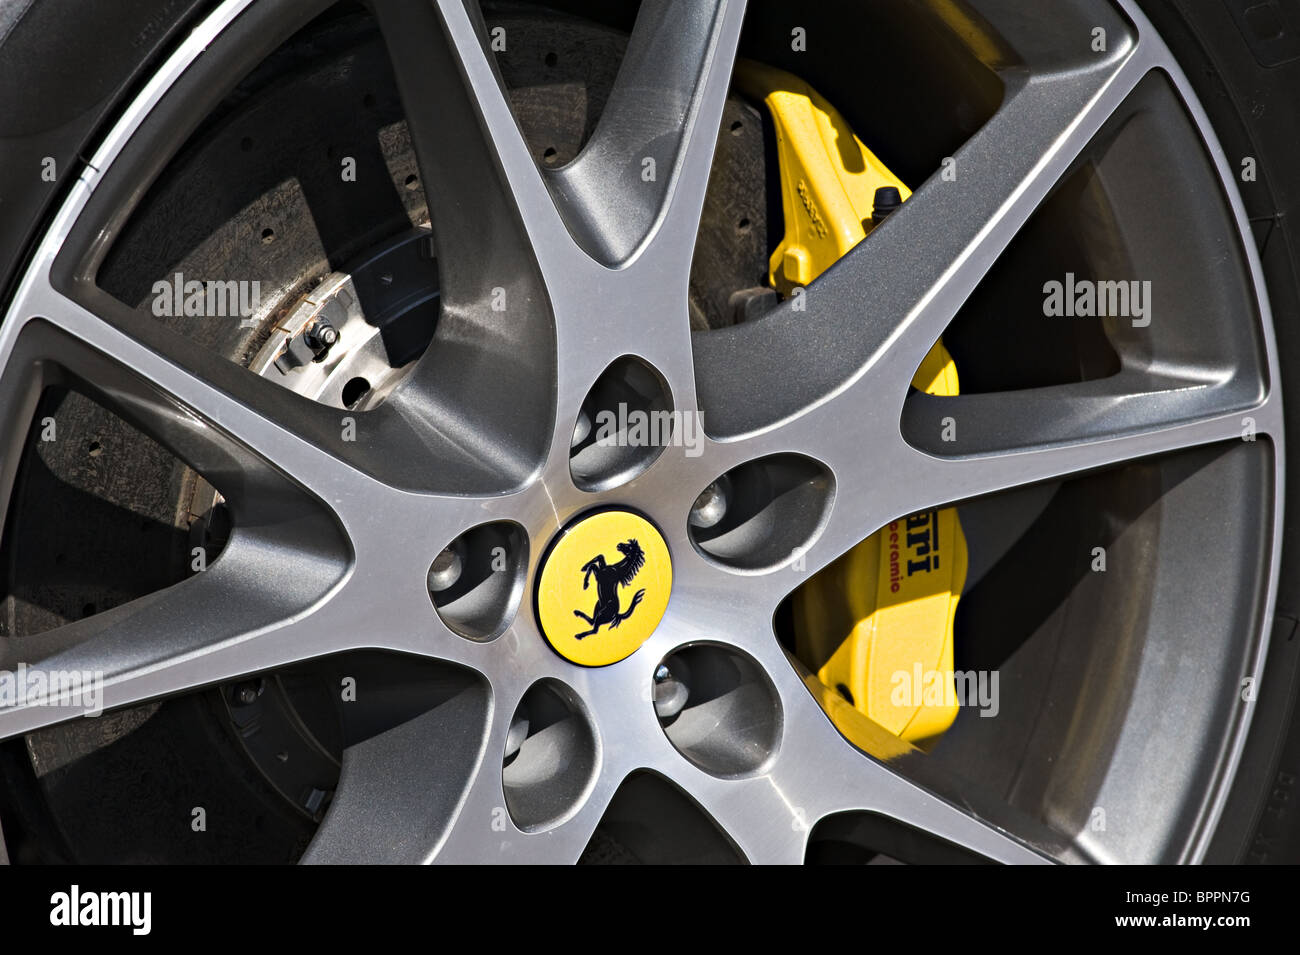 Ferrari Alloy Wheel with Prancing Horse Centre and Yellow Brake Calliper - Stock Image